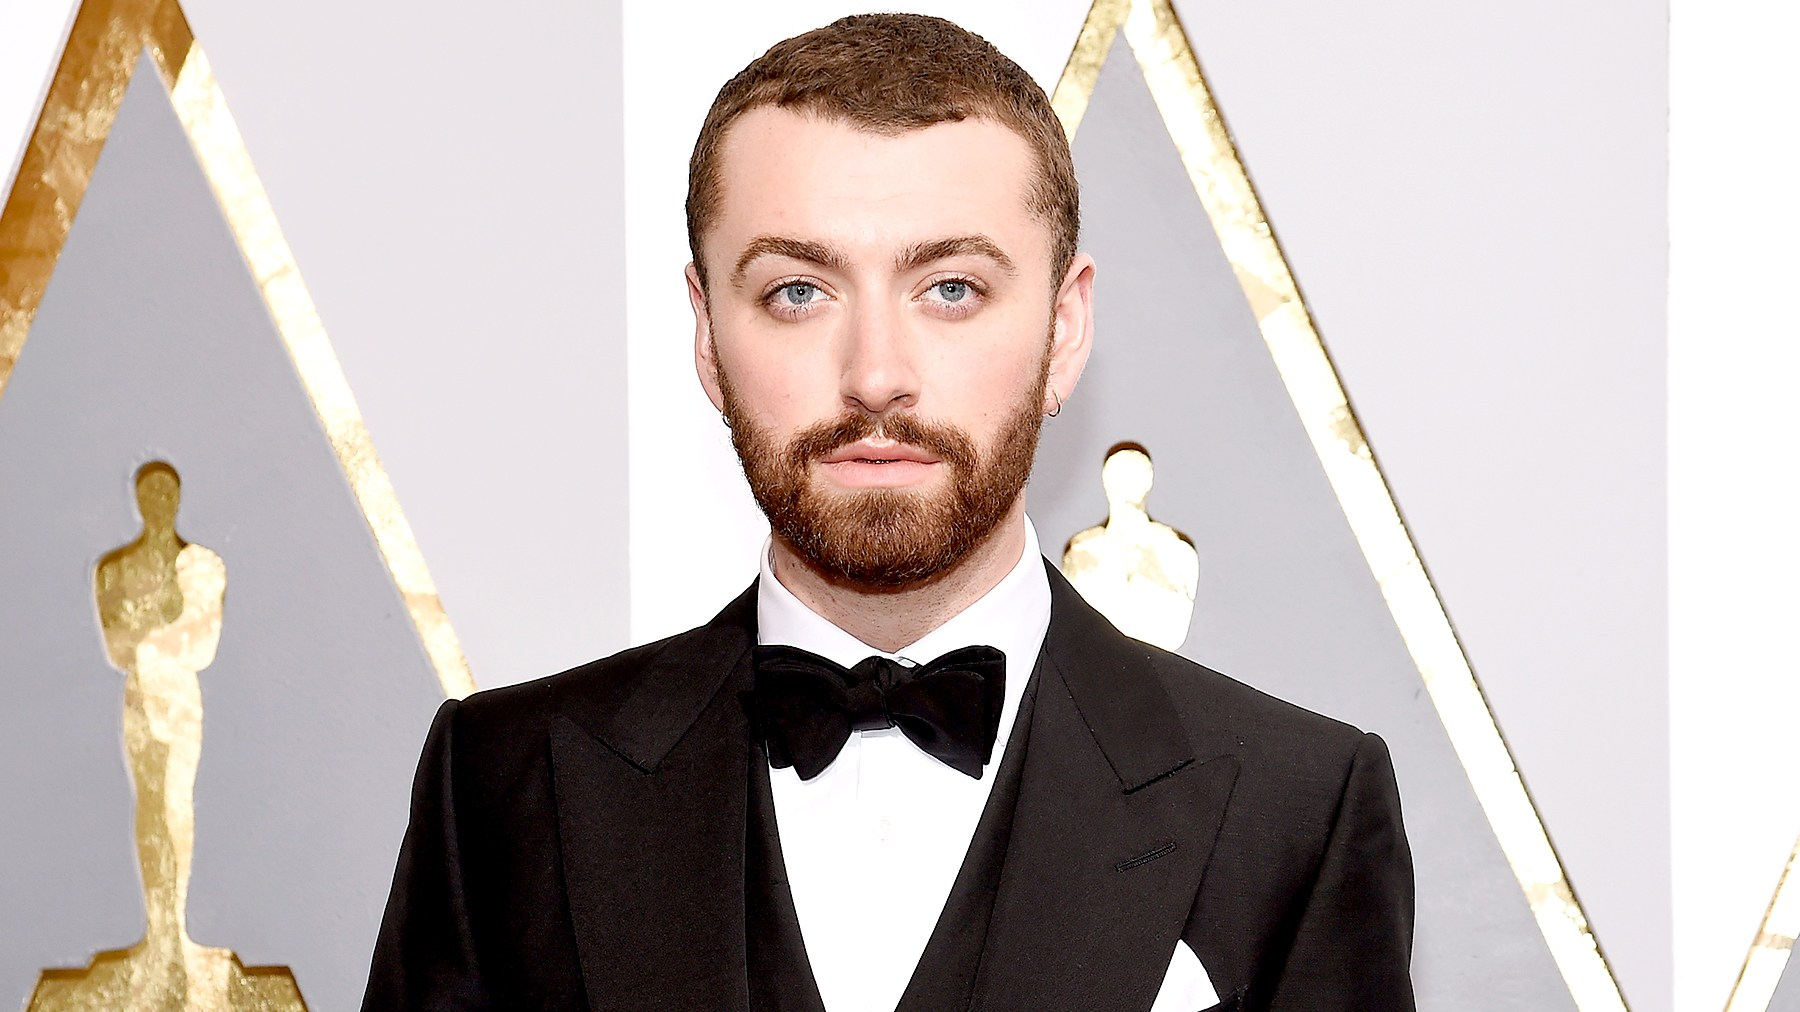 Sam Smith attends the 88th Annual Academy Awards.